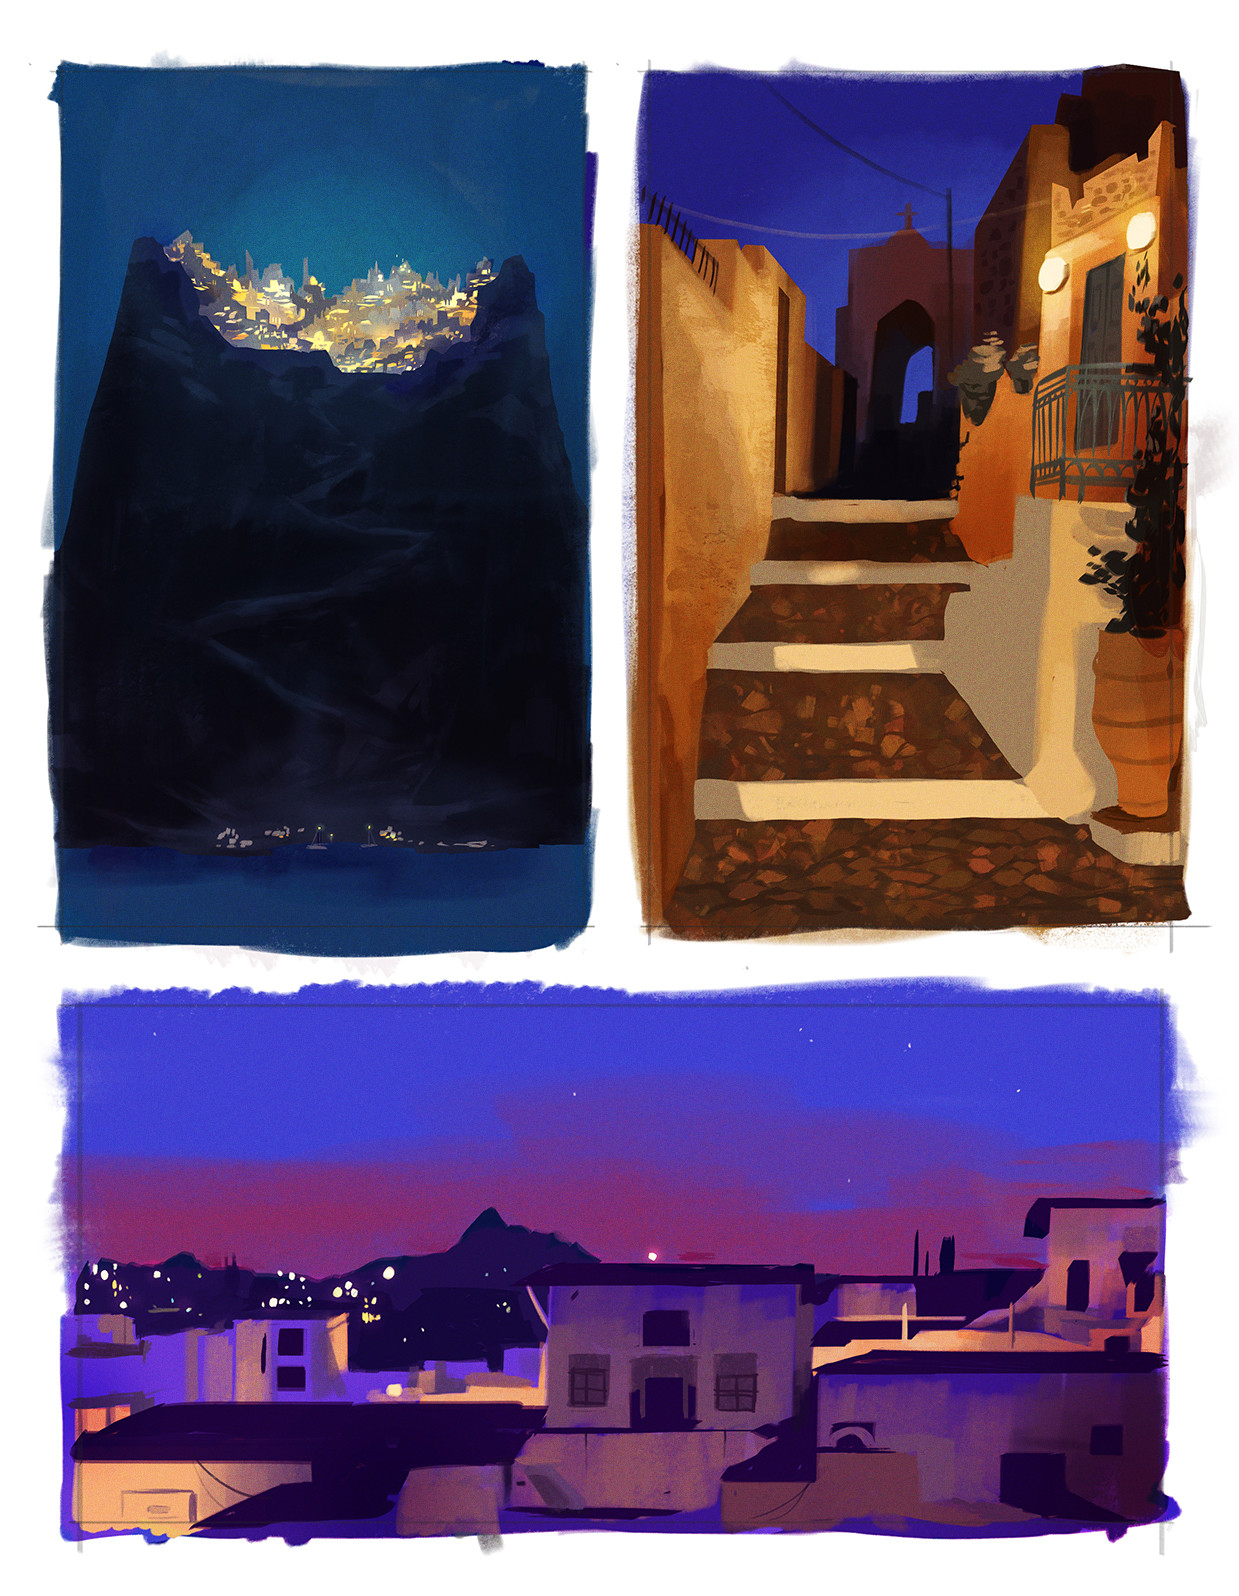 Also based off photos from a holiday in Santorini